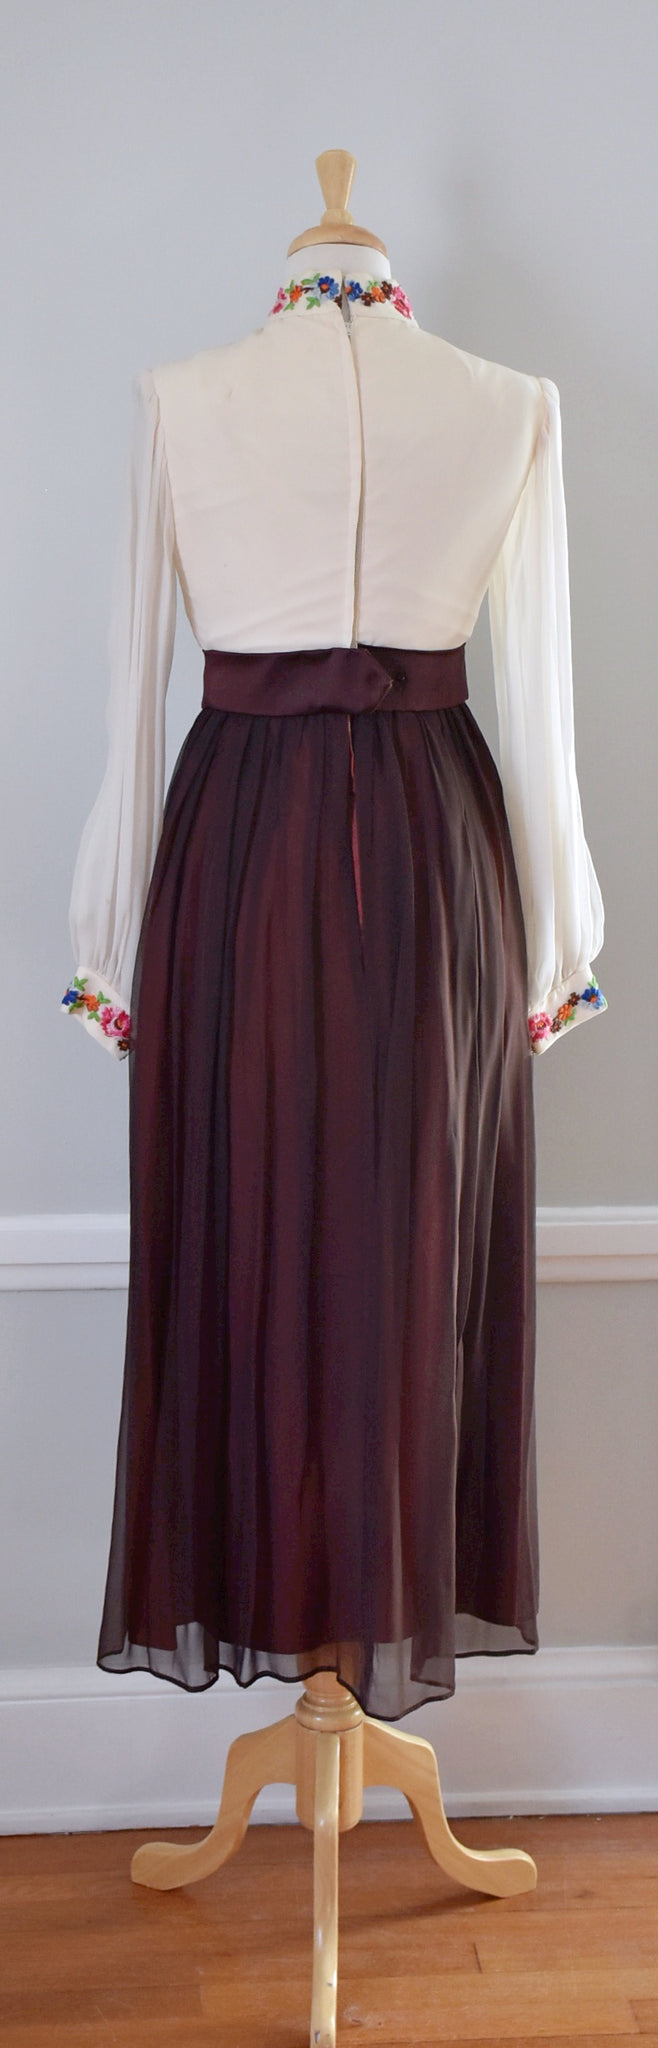 60s / 70s Chiffon Maxi Hostess Dress